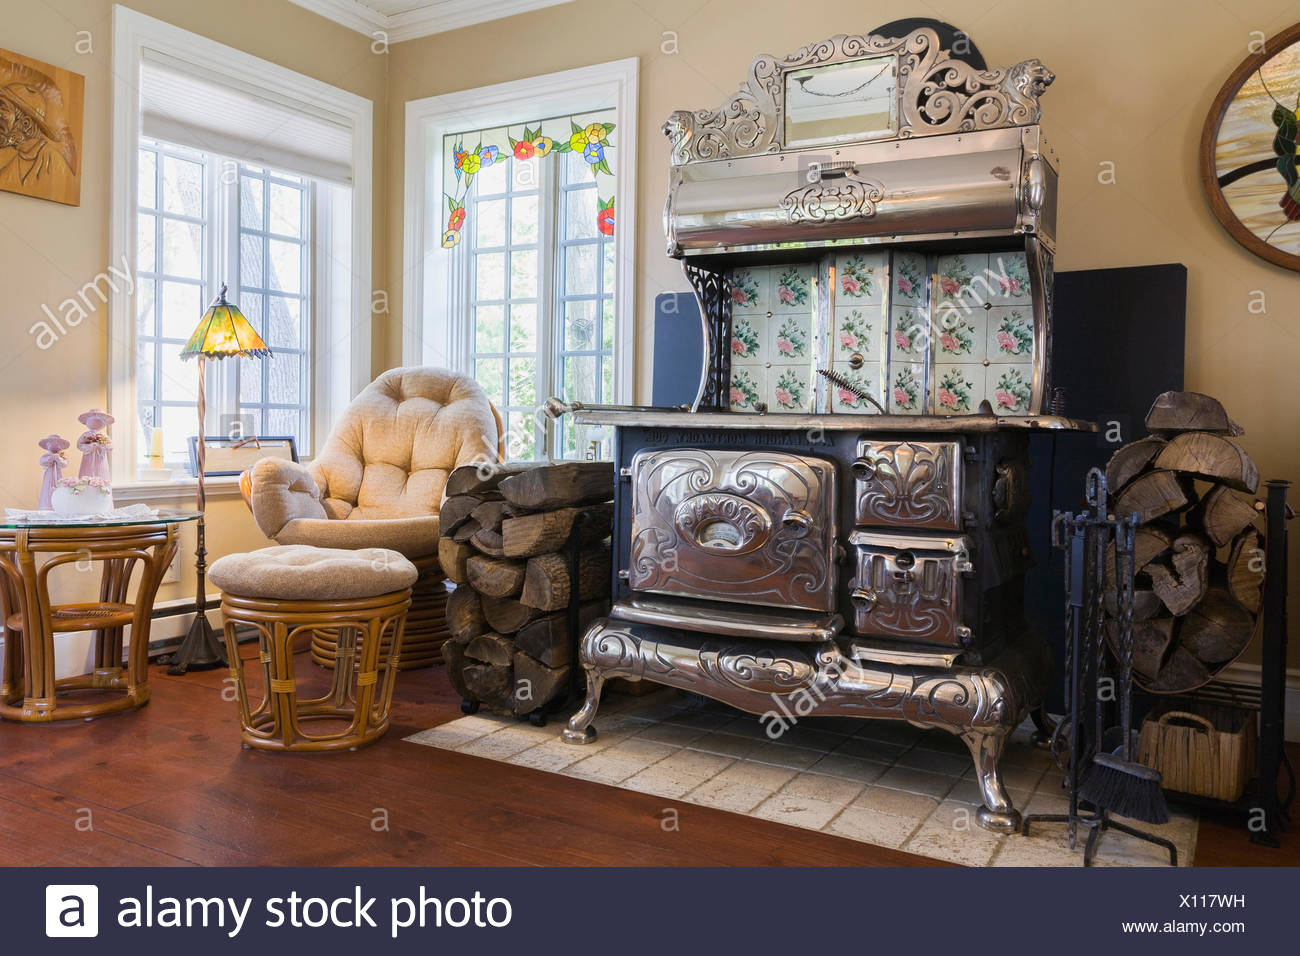 Antique black cast iron and chrome Royal wood burning cook stove in the family room inside an old reconstructed 1886 Canadiana cottage style residential home, Quebec, Canada Stock Photo